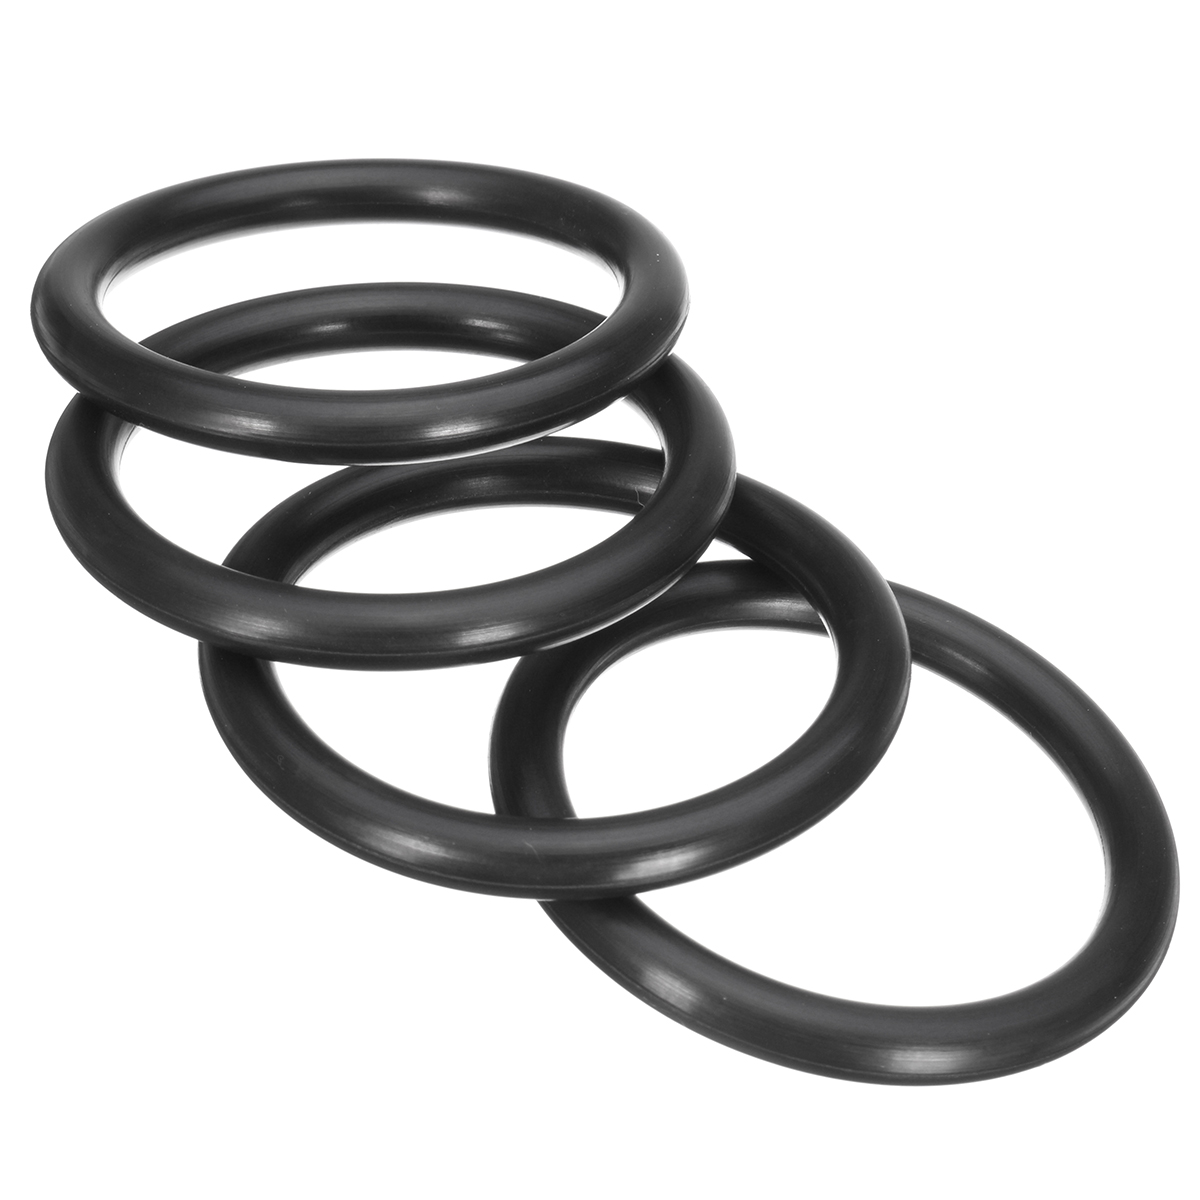 4x Car Bumper Fender Quick Release Fastener Replacement Rubber O-Ring Kit New